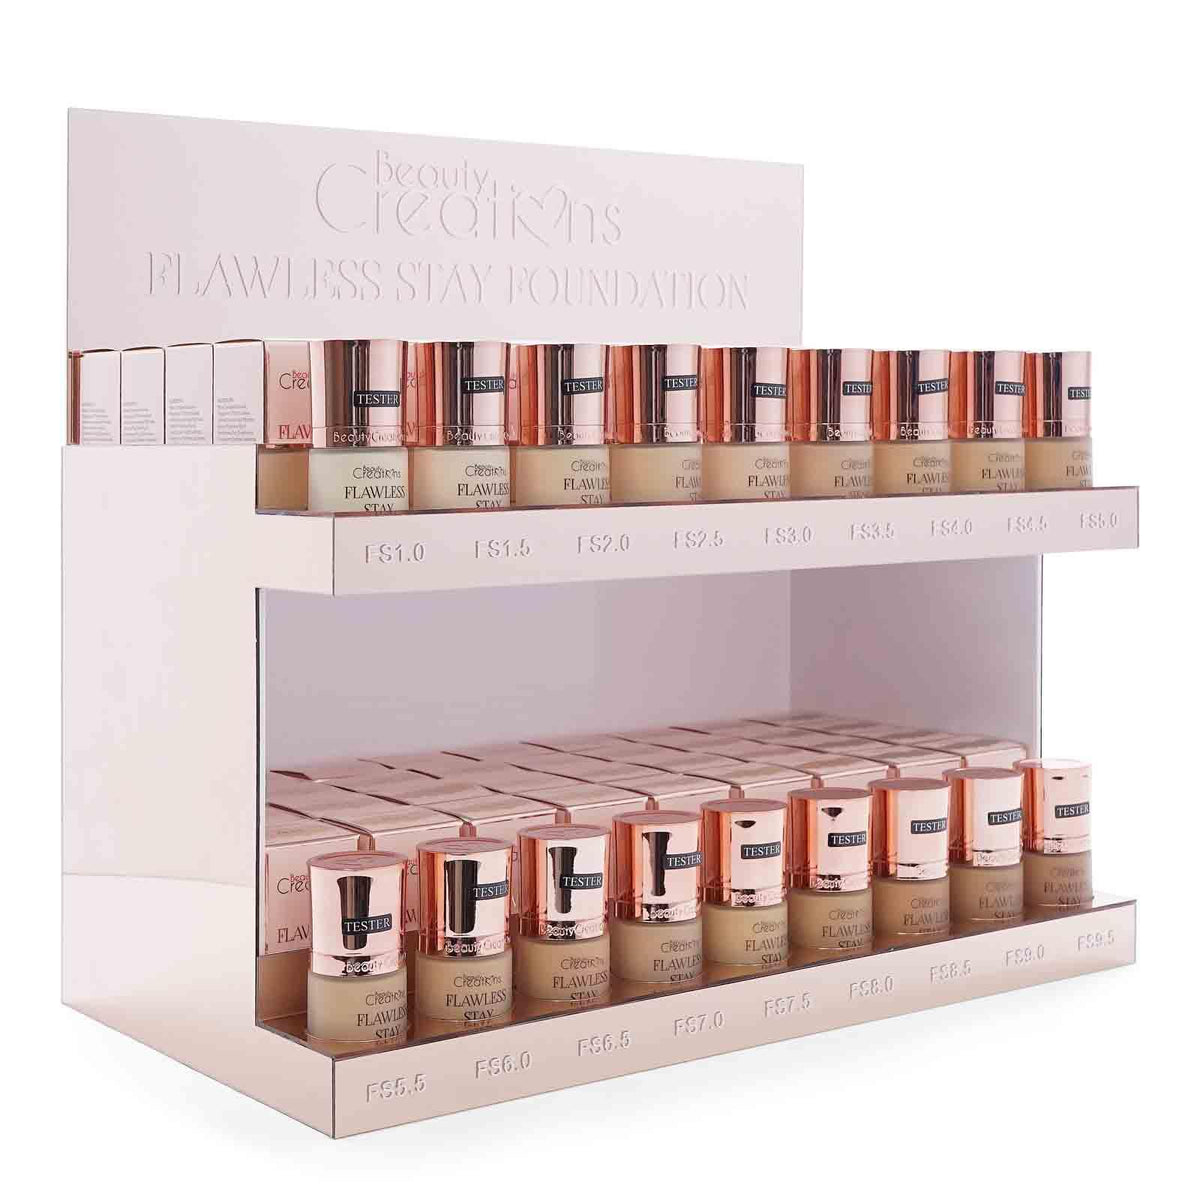 USA Wholesale |  BEAUTY CREATIONS | Flawless Foundation Display Case (126)